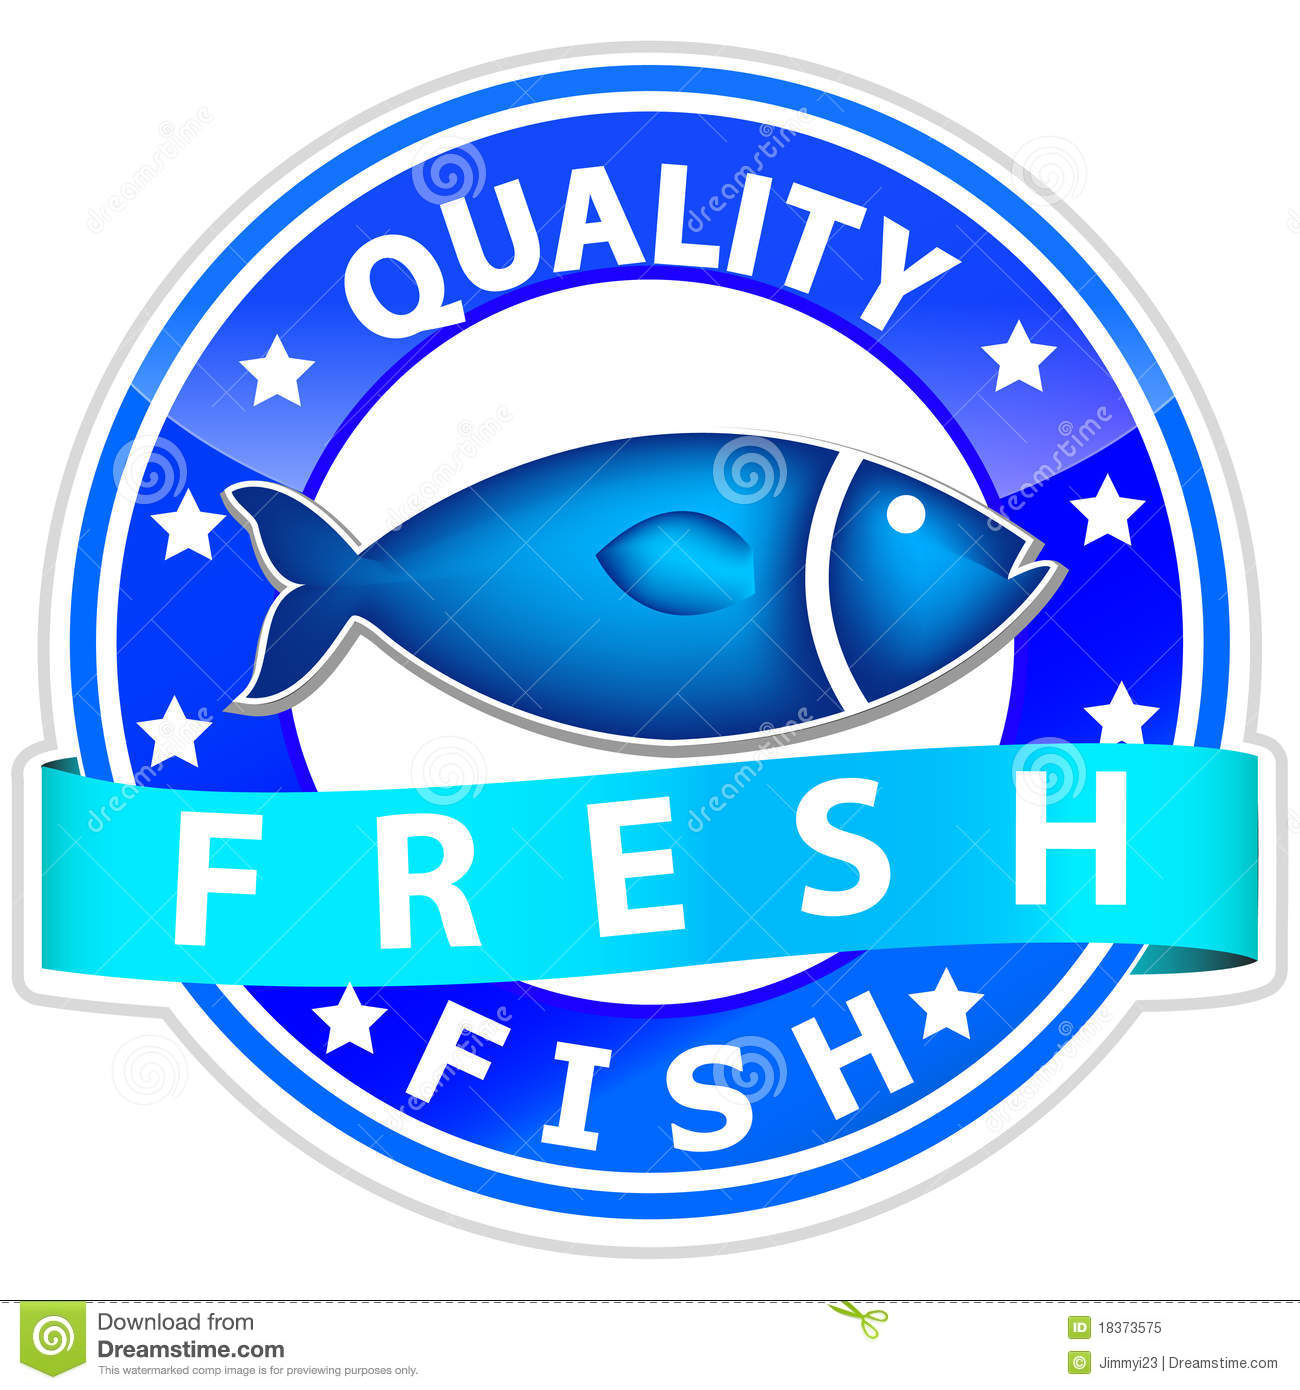 Fish sign royalty free stock photo image 18373575 for Www plenty of fish sign in